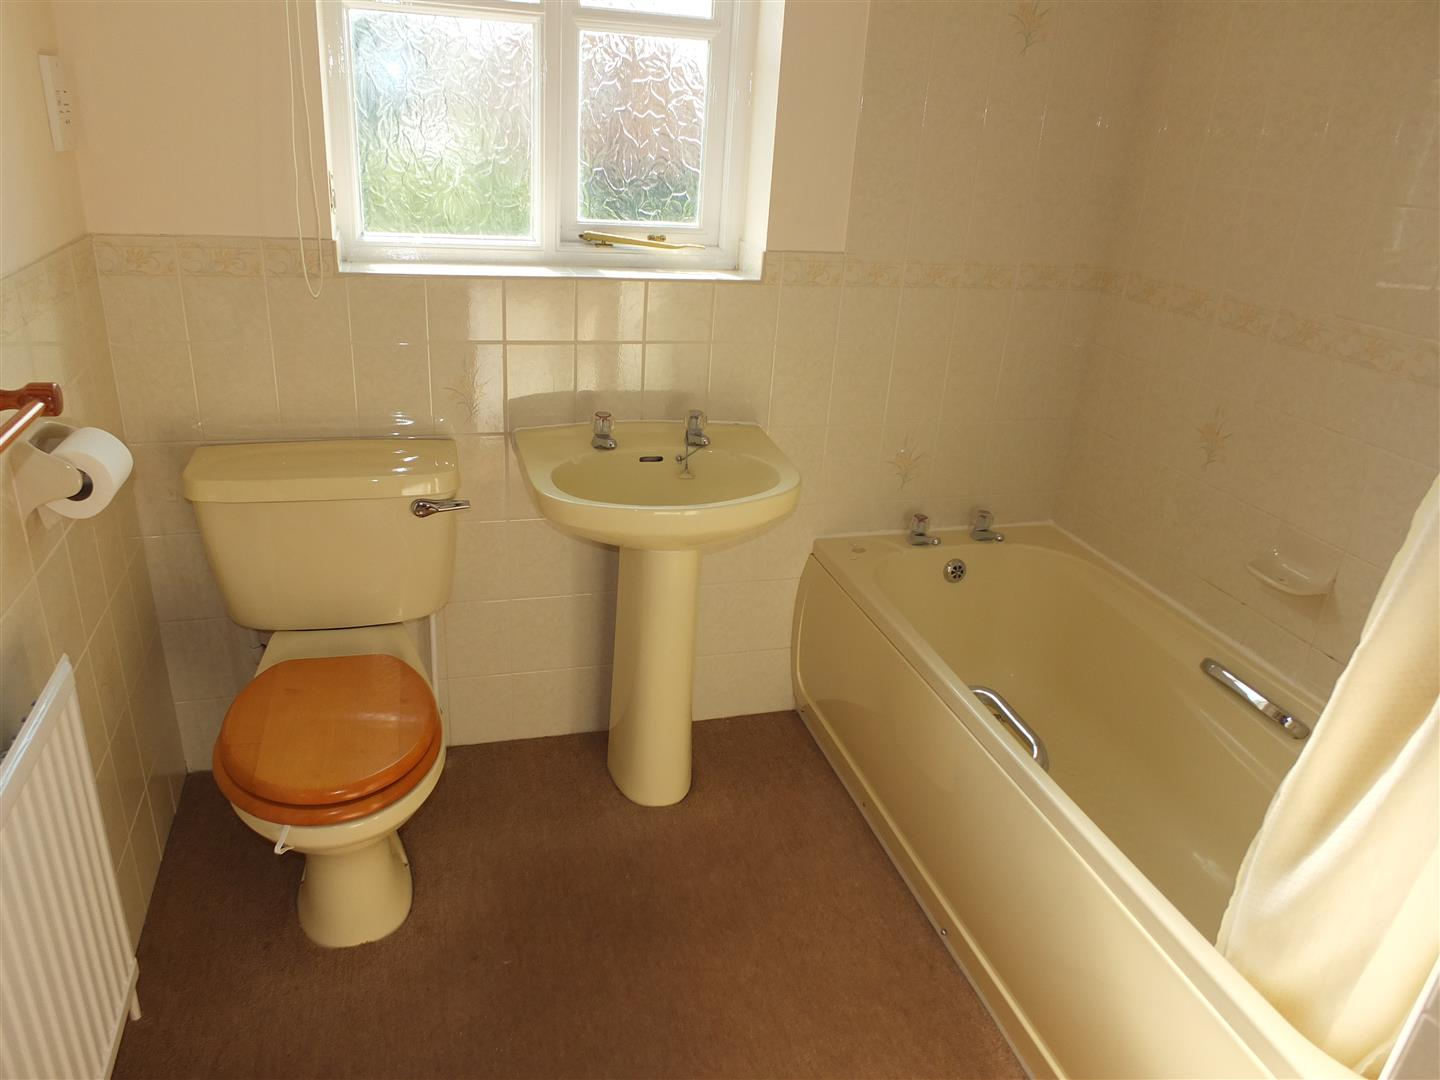 1 bed house to rent in Long Sutton Spalding, PE12 9RR  - Property Image 4